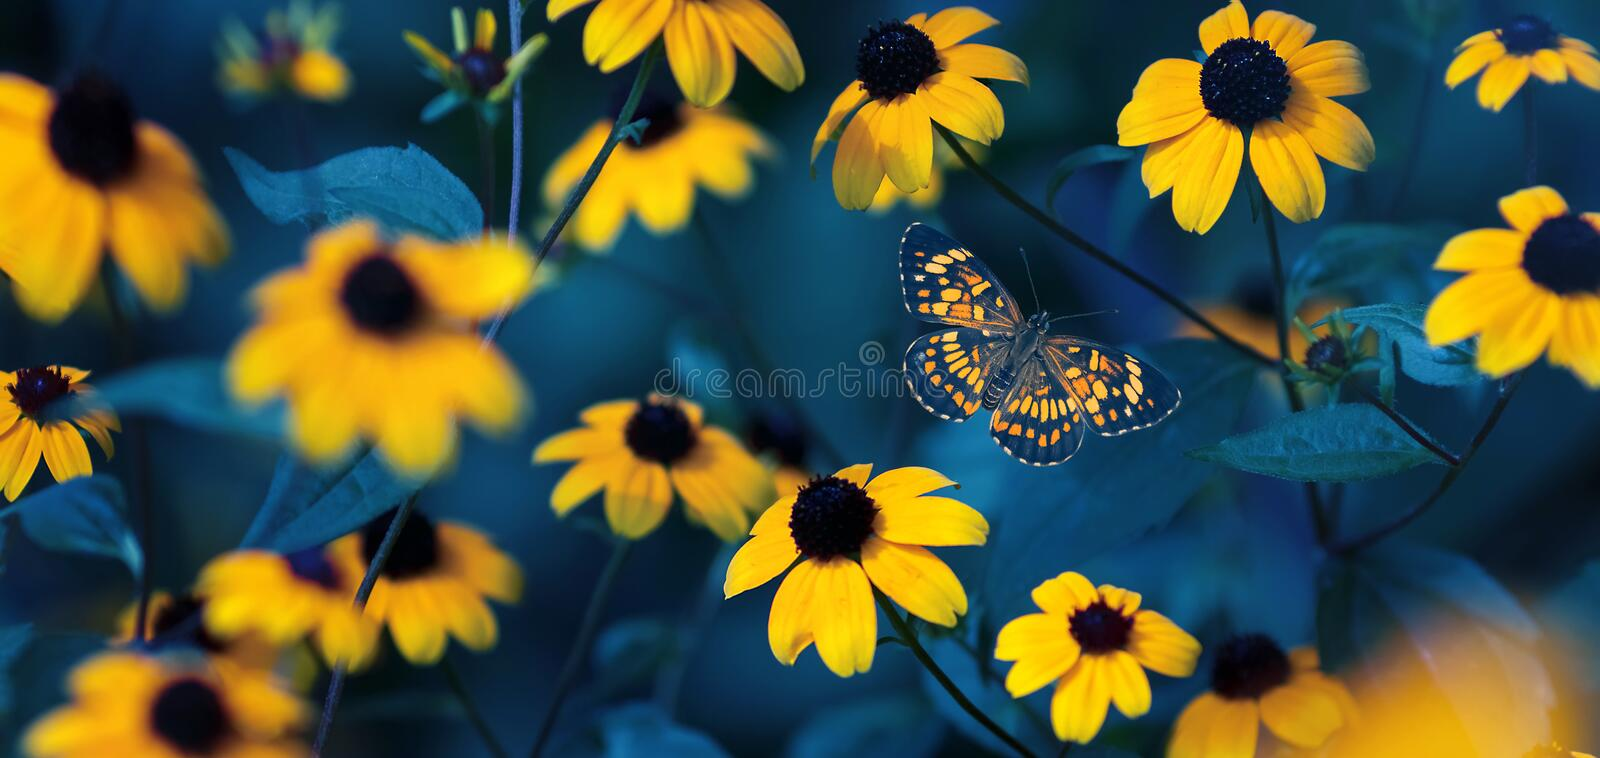 Tropical butterfly and small yellow bright summer flowers on a background of blue foliage in a fairy garden. royalty free stock photography